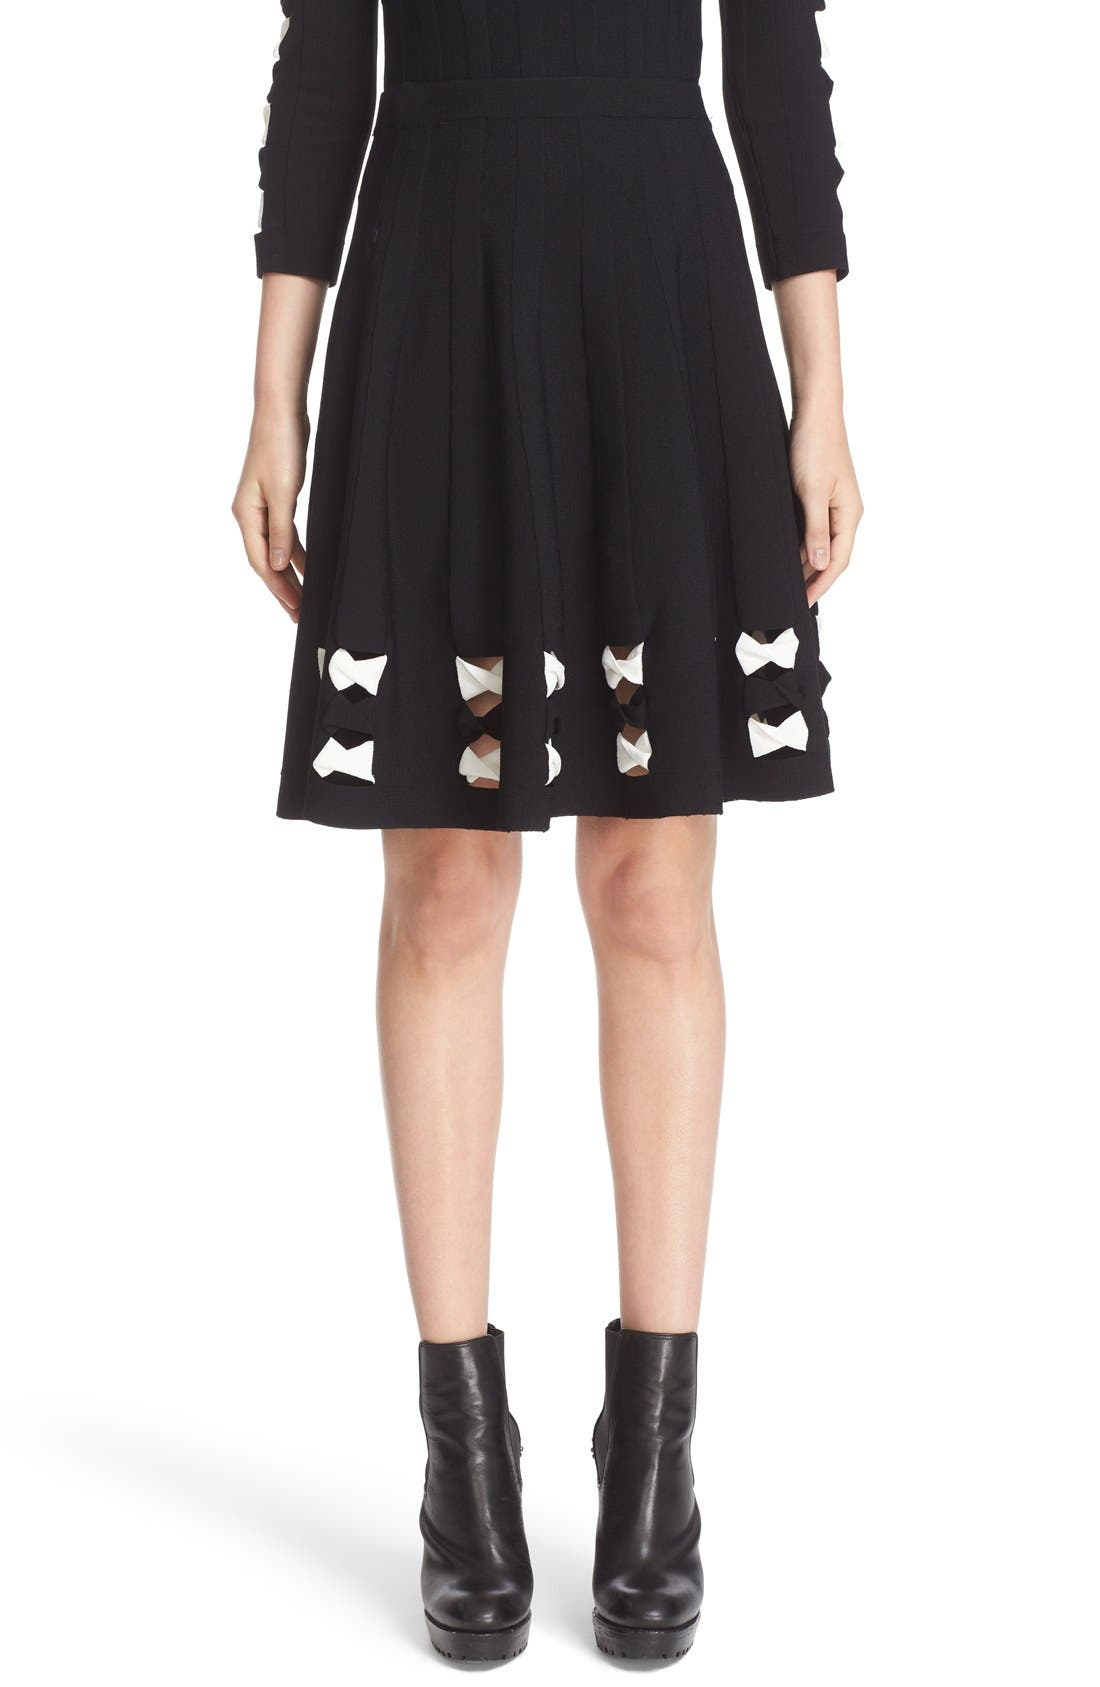 Alternate Image 1 Selected - Alexander McQueen Twisted Cutout Skirt